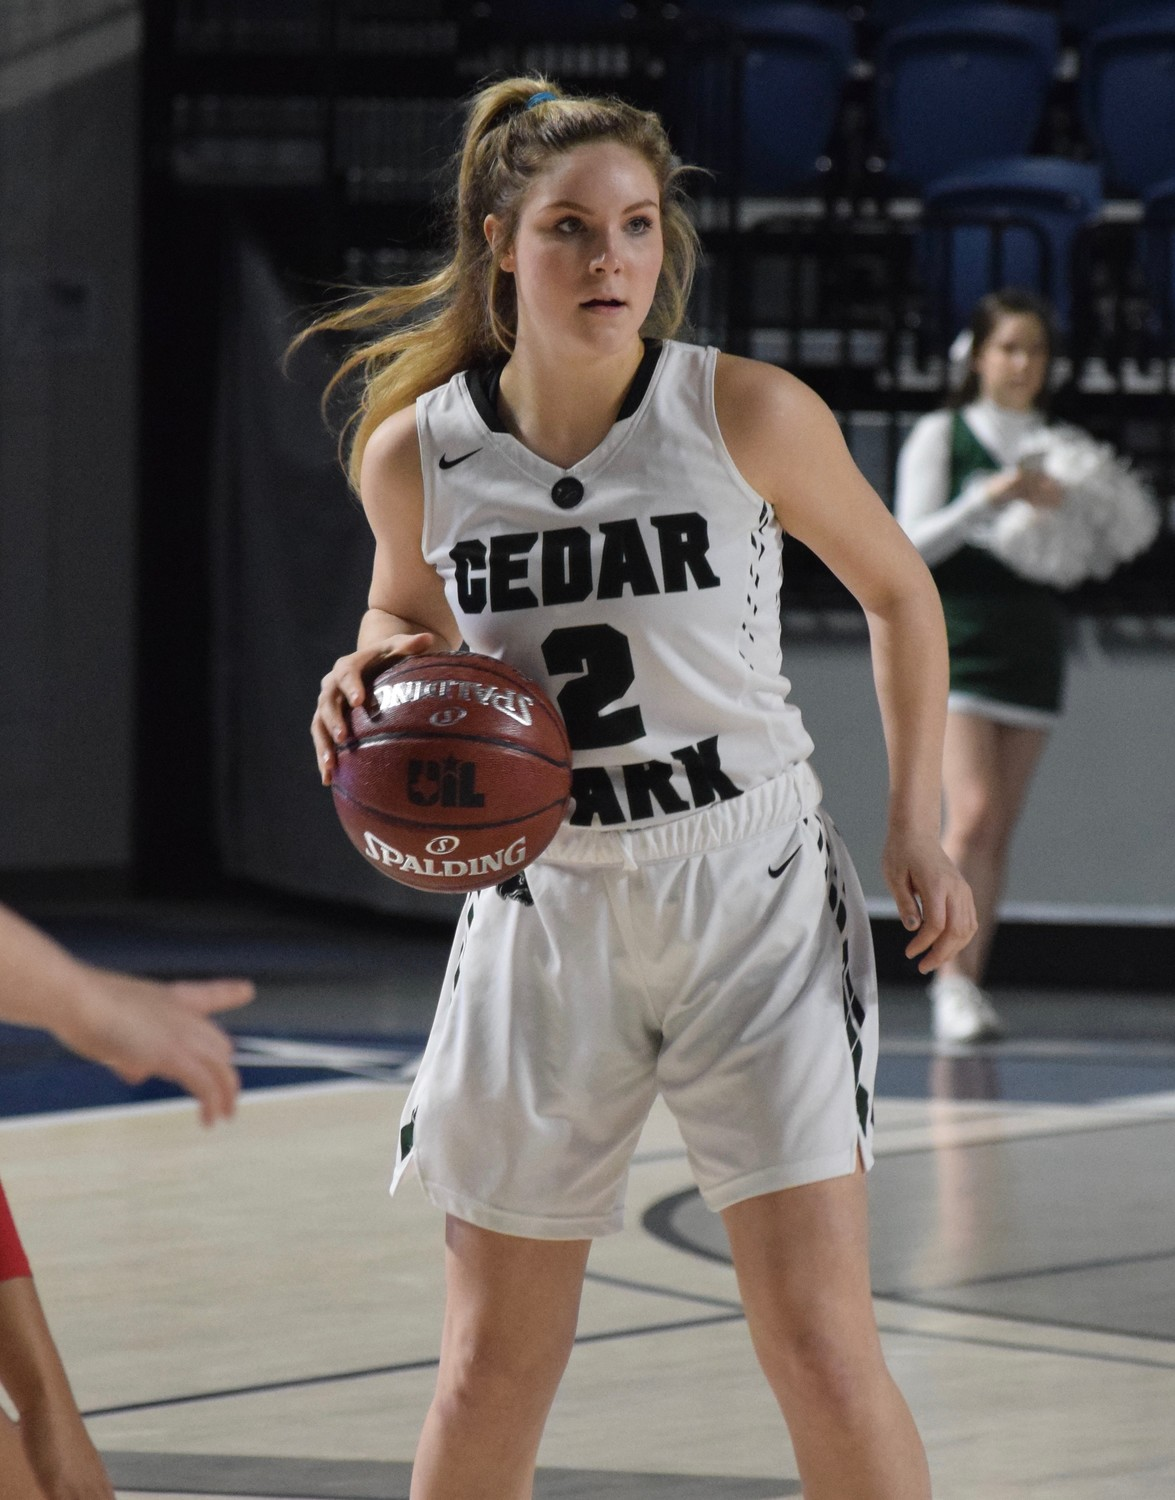 Jordan Ott and Cedar Park lost to Crosby 53-47 at the Delmar Fieldhouse in the regional semifinals.